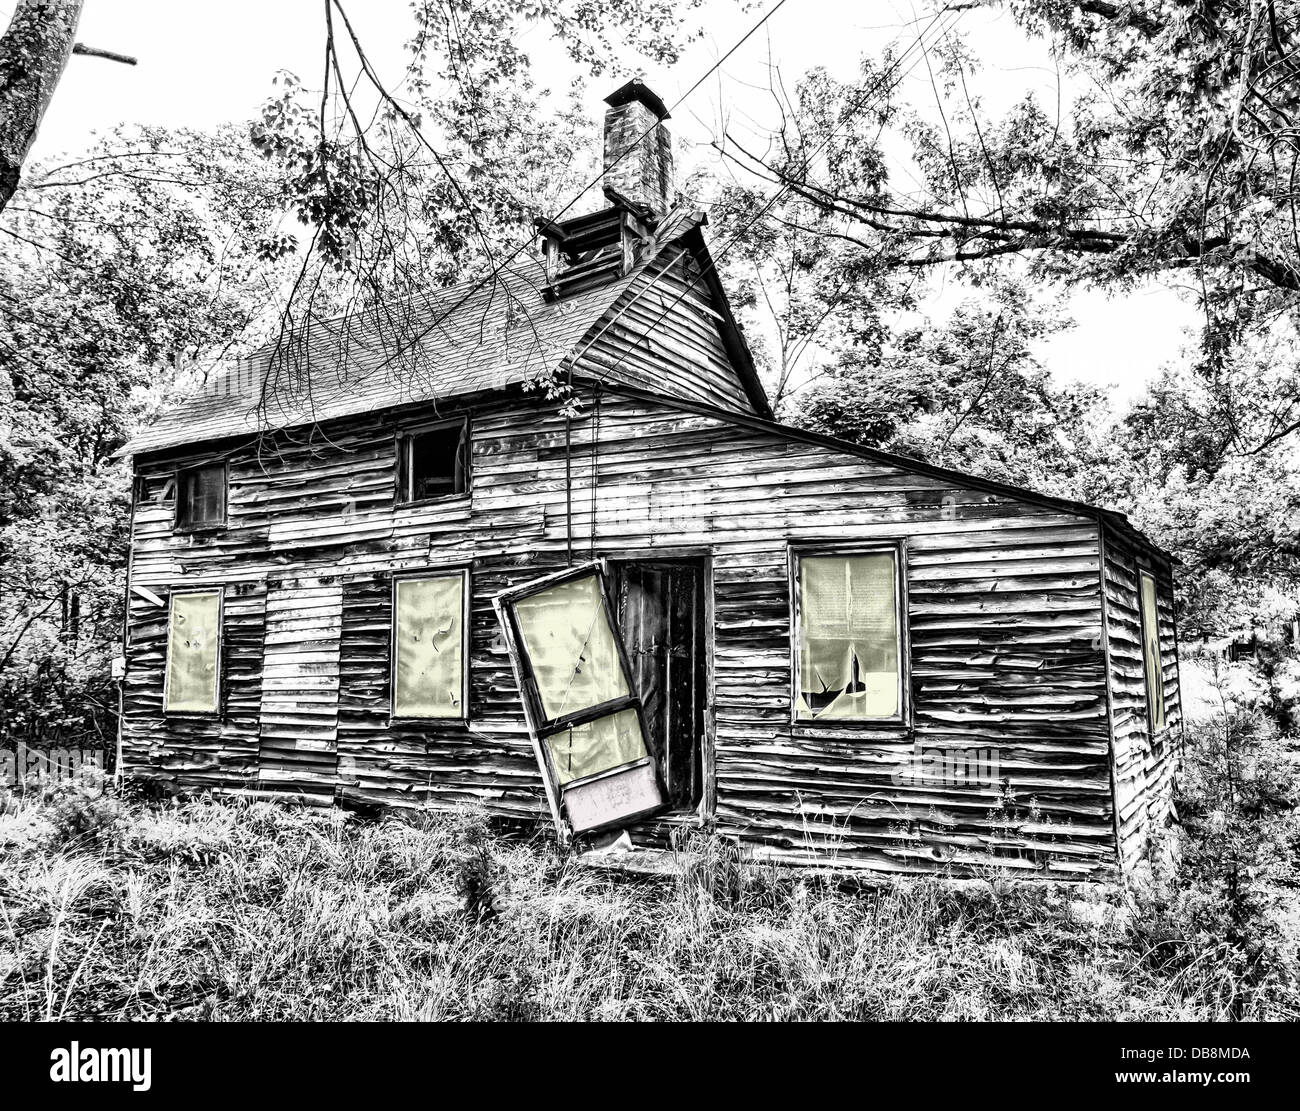 abandon home house countryside country nature - Stock Image